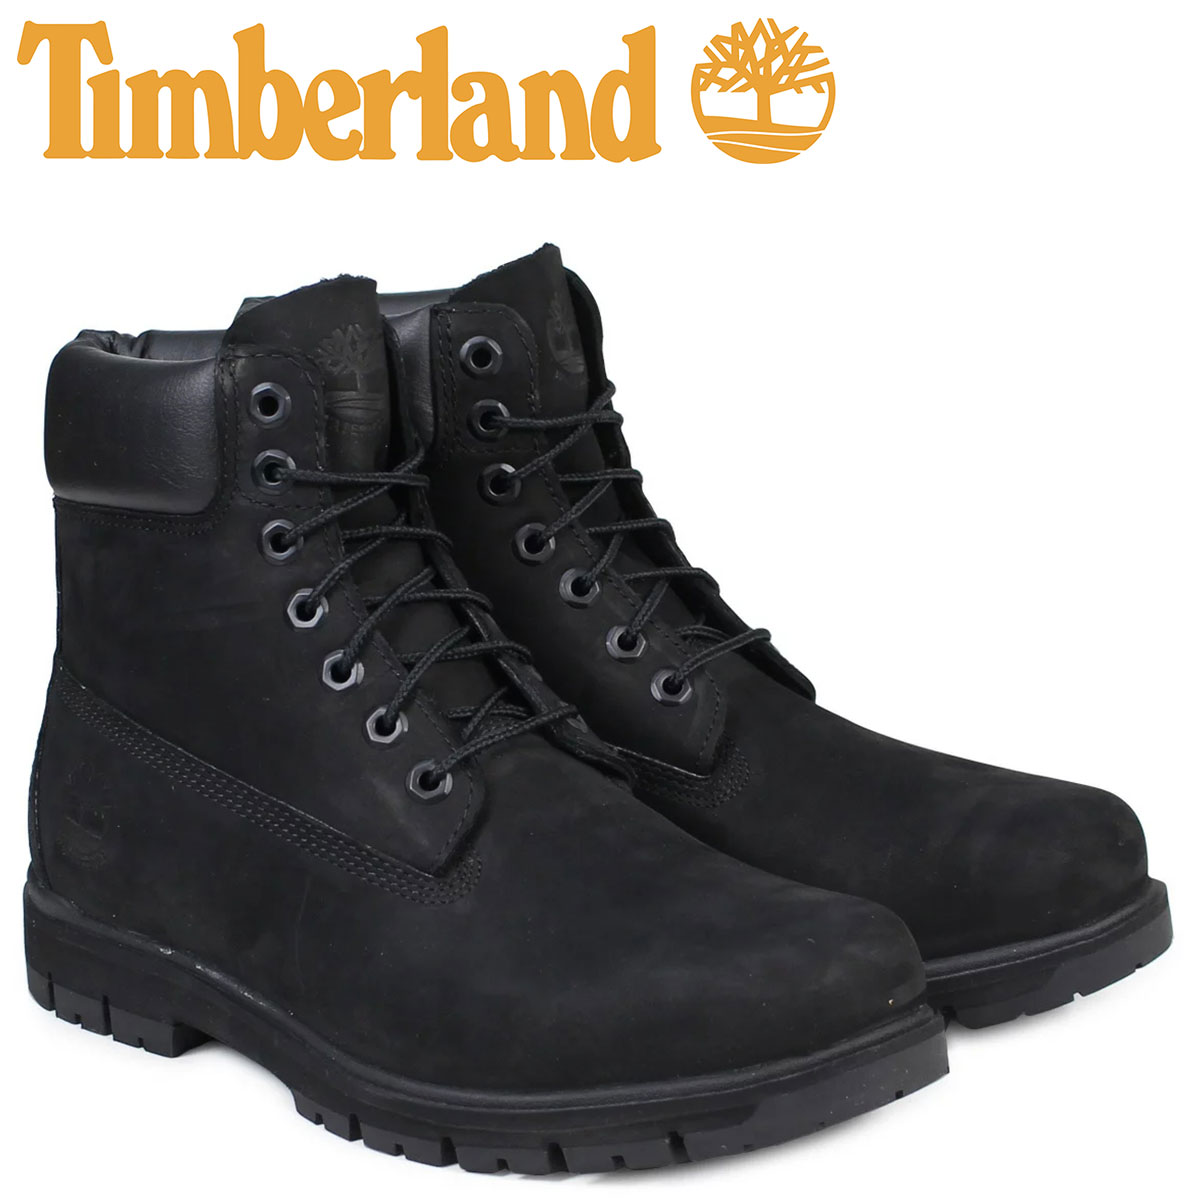 0d9bd711a0d4 6 inches of Timberland boots men Timberland RADFORD 6INCH PREMIUM BOOT  A1JI2 waterproof W Wise waterproofing black  9 26 Shinnyu load